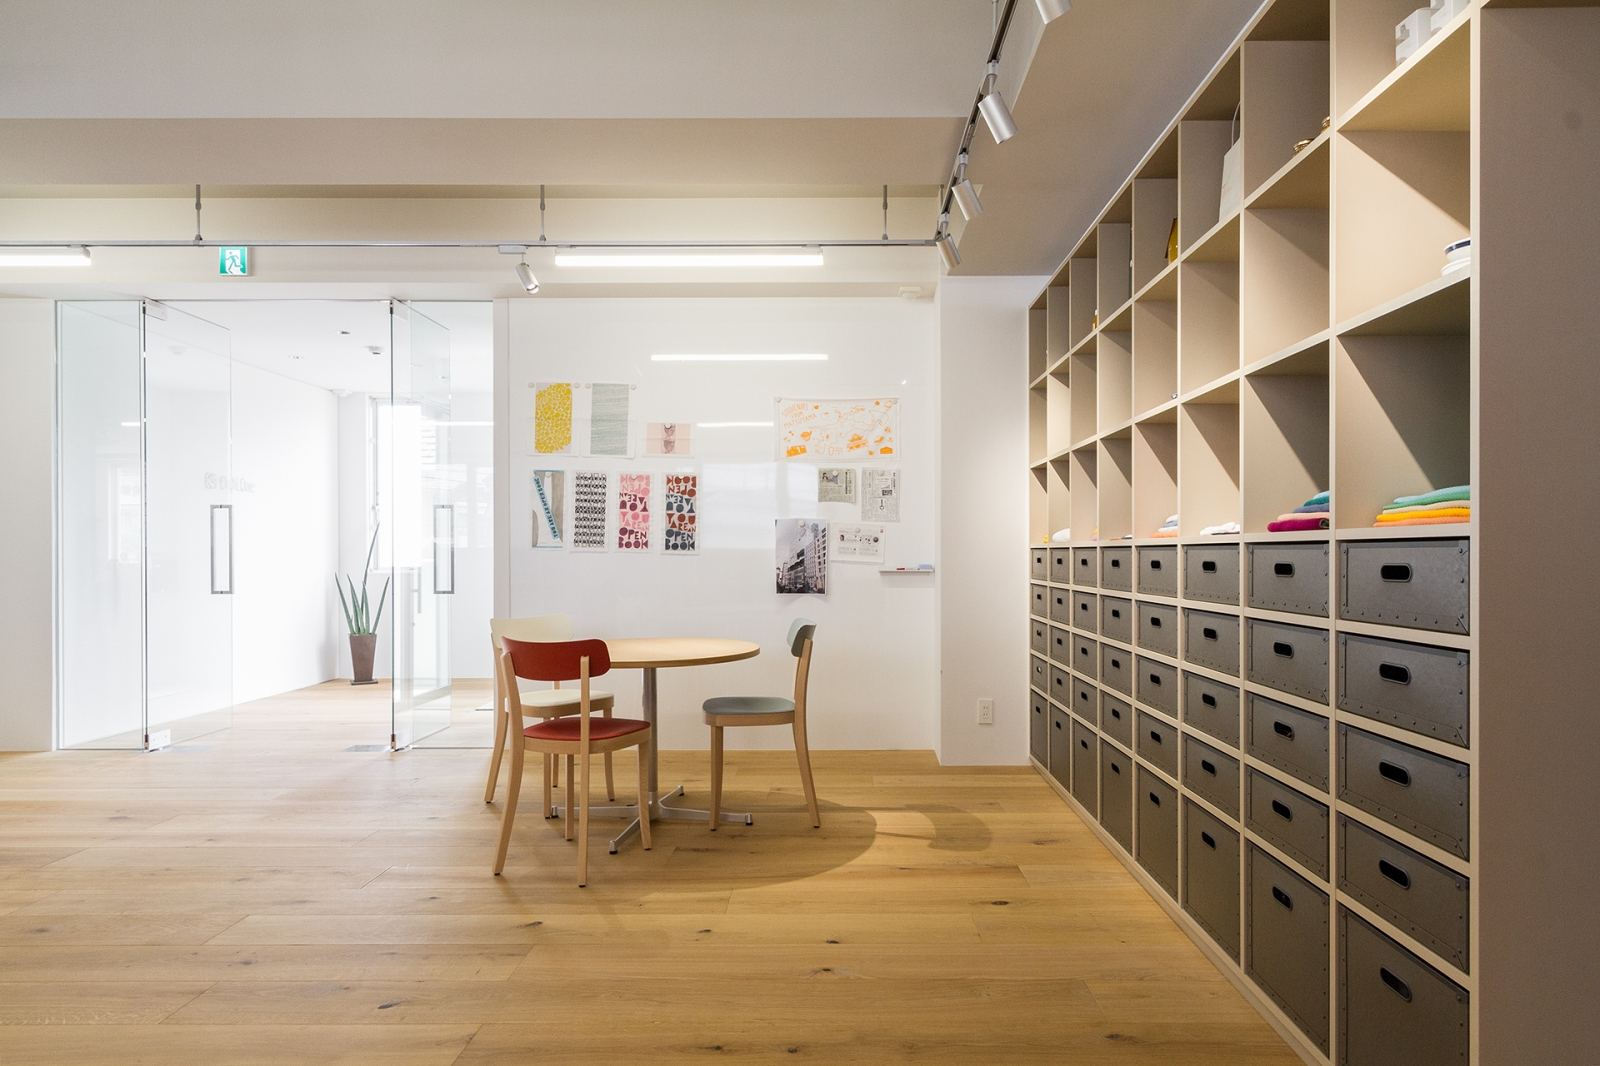 eight one co., ltd. Office-image8